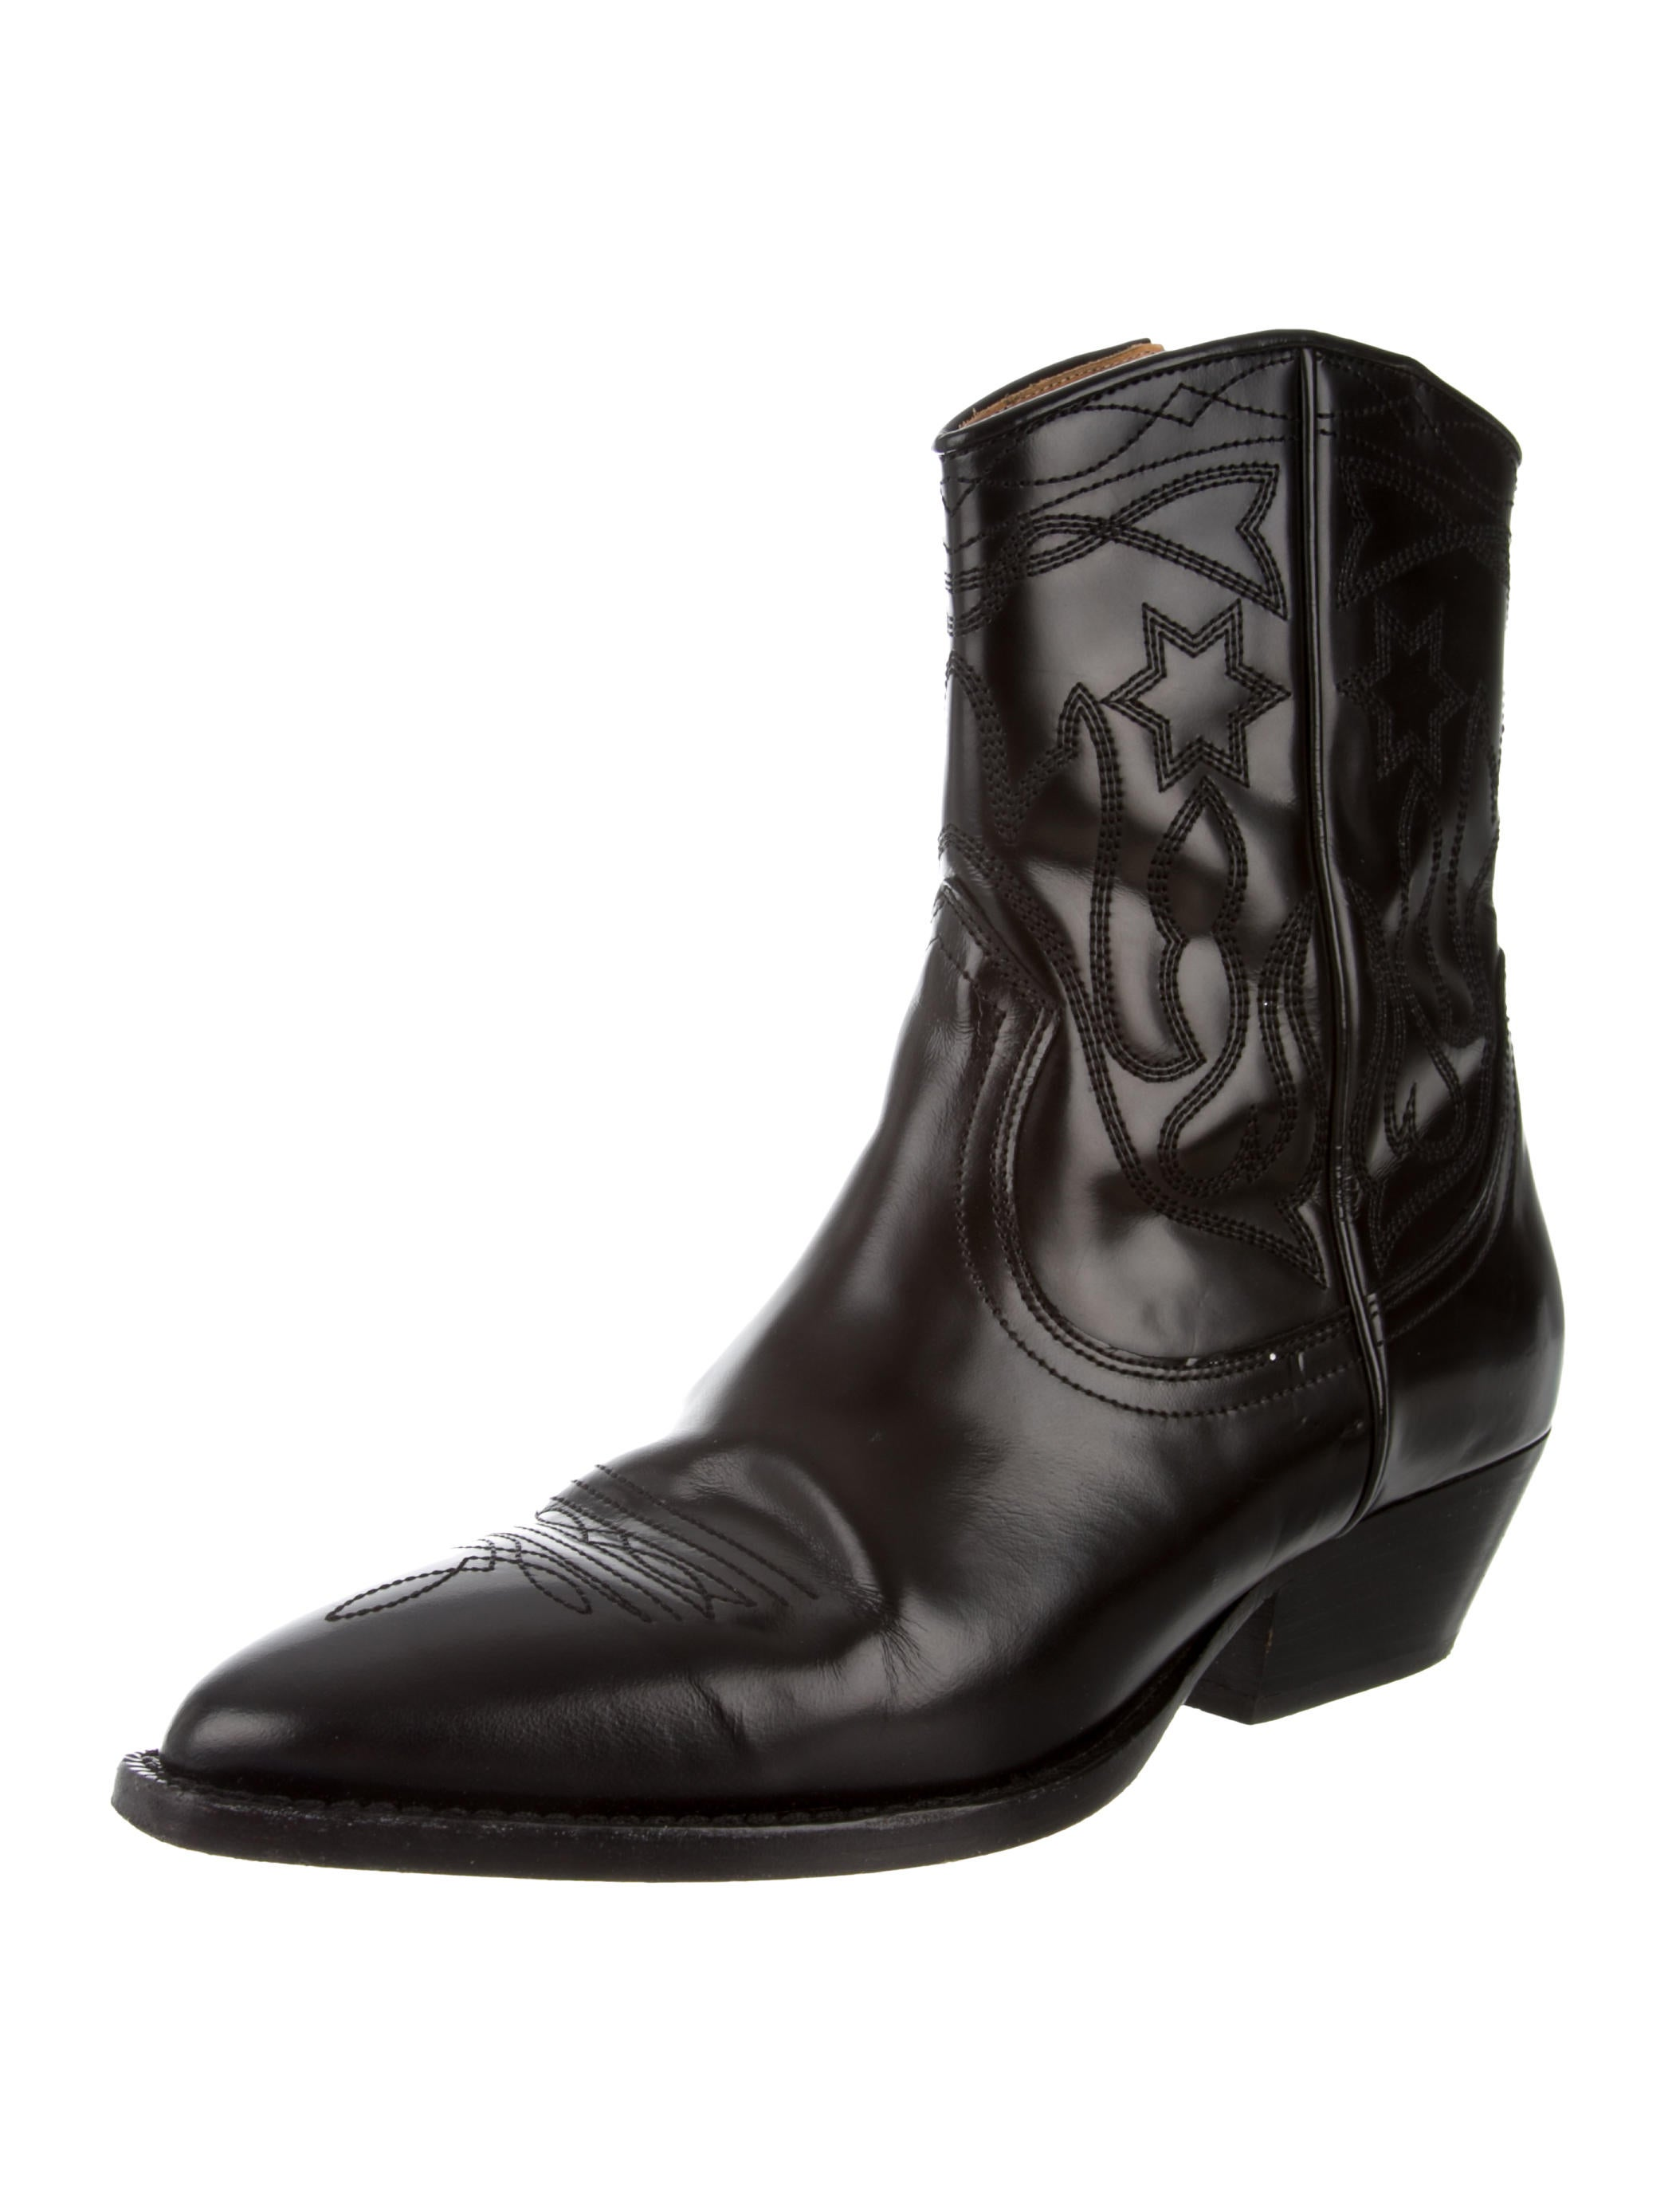 Sandro Cowboy Ankle Boots - Shoes